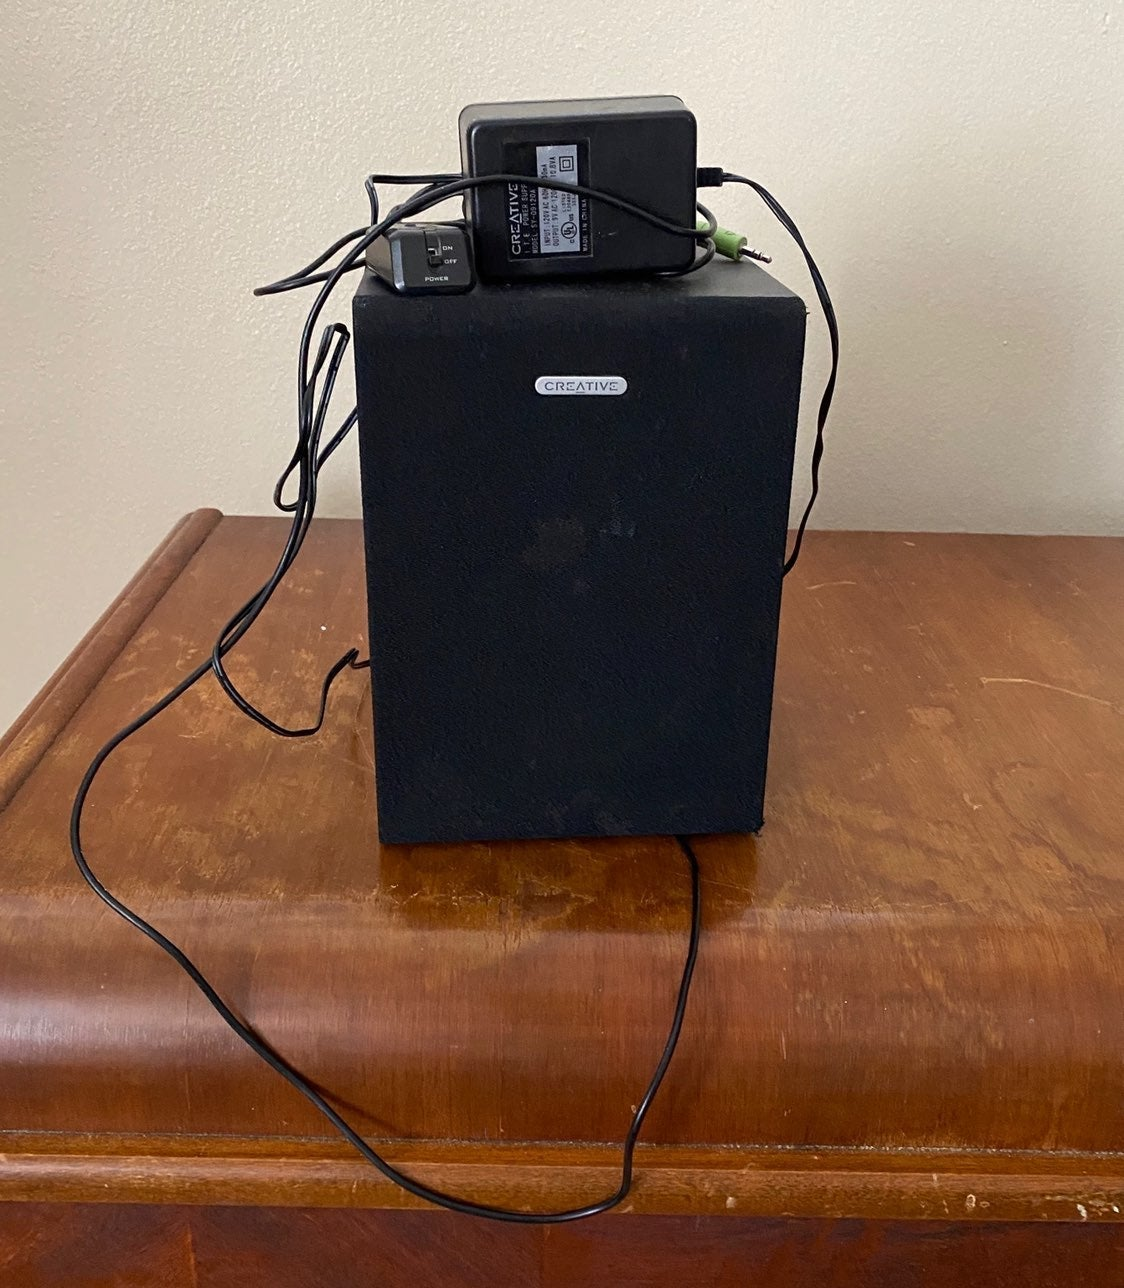 Creative Labs SBS 2.1 330 Subwoofer USED